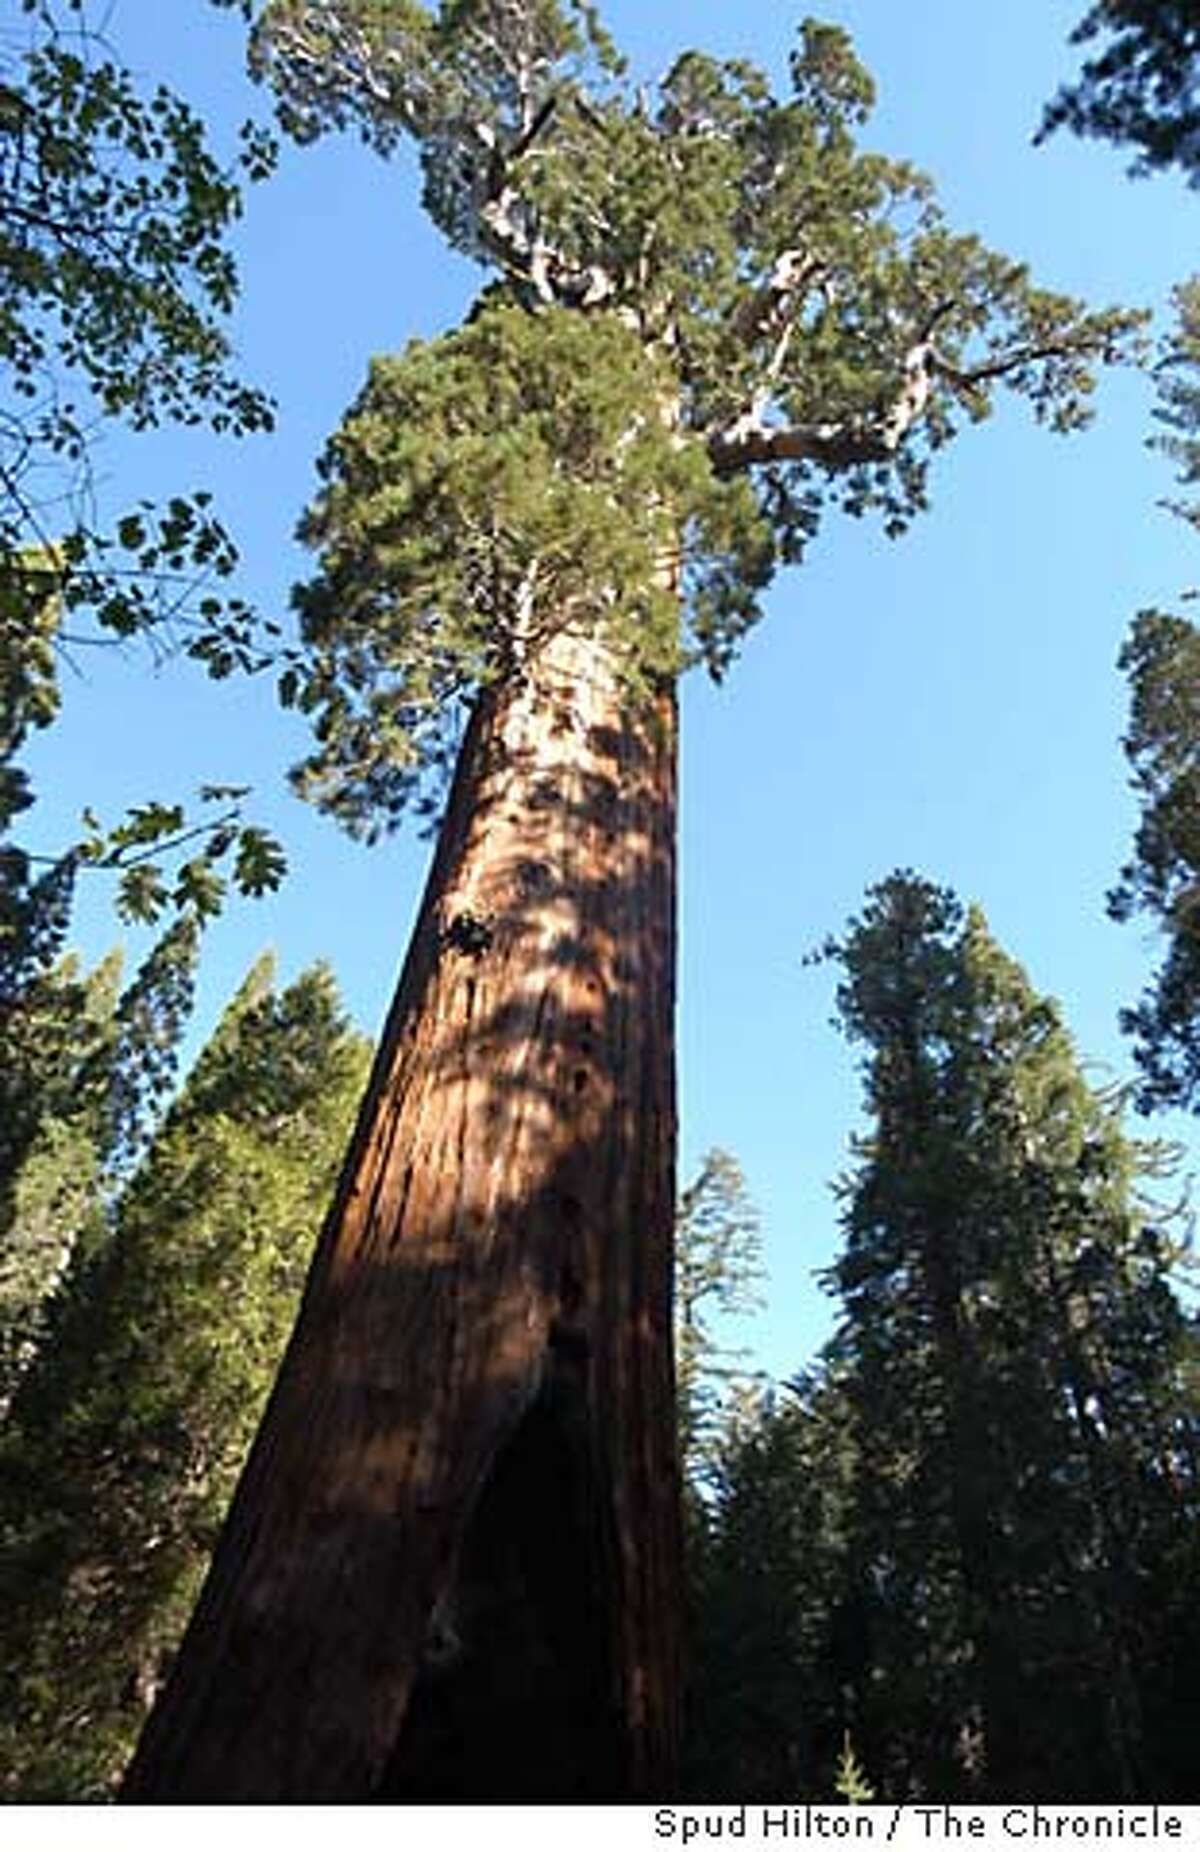 One of the giant sequoia trees in Grant Grove in Kings Canyon National Park. Grant Grove was protected as Gen. Grant National Park in 1890 in the same bill that made Yosemite a national park. Kings Canyon National Park on 6/15/05. Spud Hilton / The Chronicle